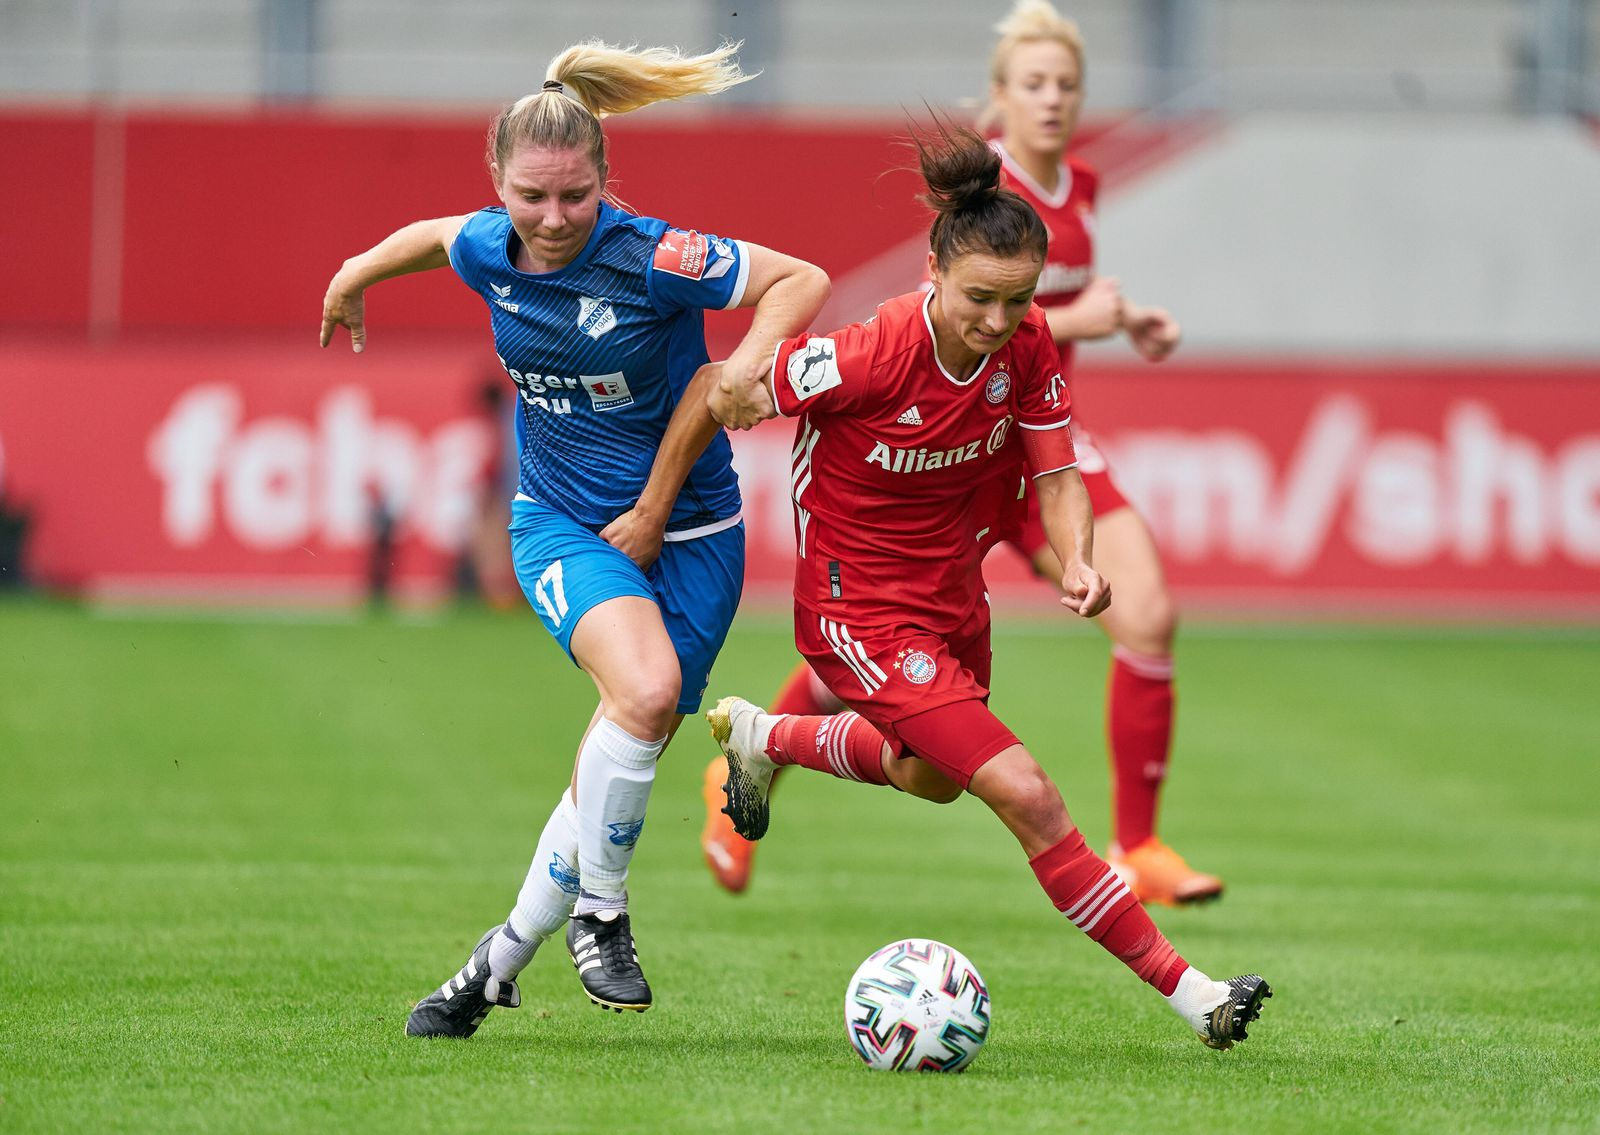 Football Munich - Sand, Munich 6th Sept, 2020. Lina MAGULL, FCB Women 16 compete for the ball, tackling, duel, header, z